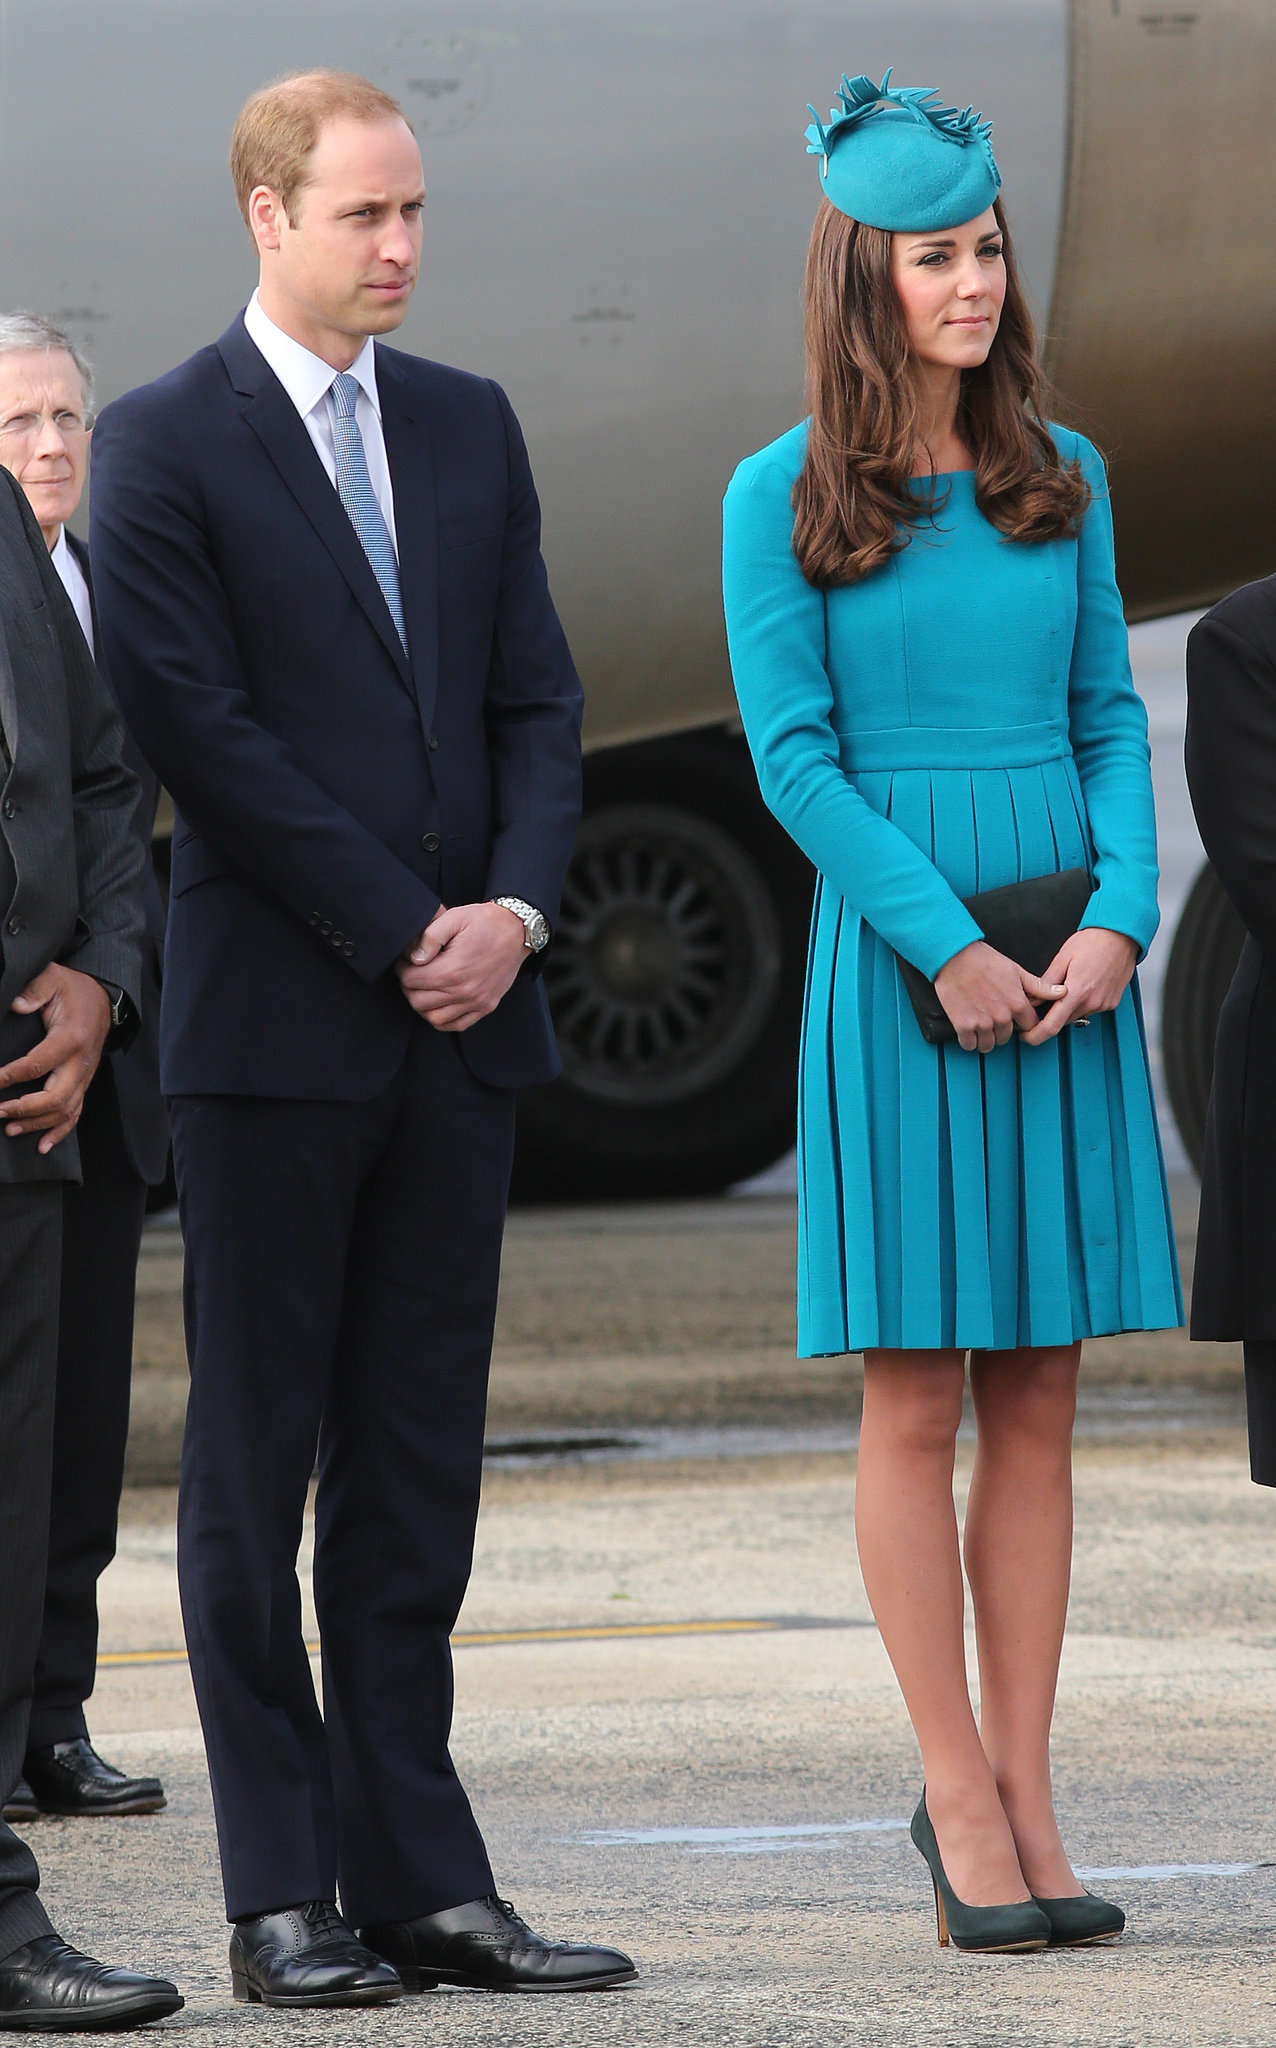 http://media2.onsugar.com/files/2014/04/14/605/n/1922564/c2c07a1b2b491dea_484550387.xxxlarge_2x/i/Kate-Middleton-Emilia-Wickstead-Dress.jpg